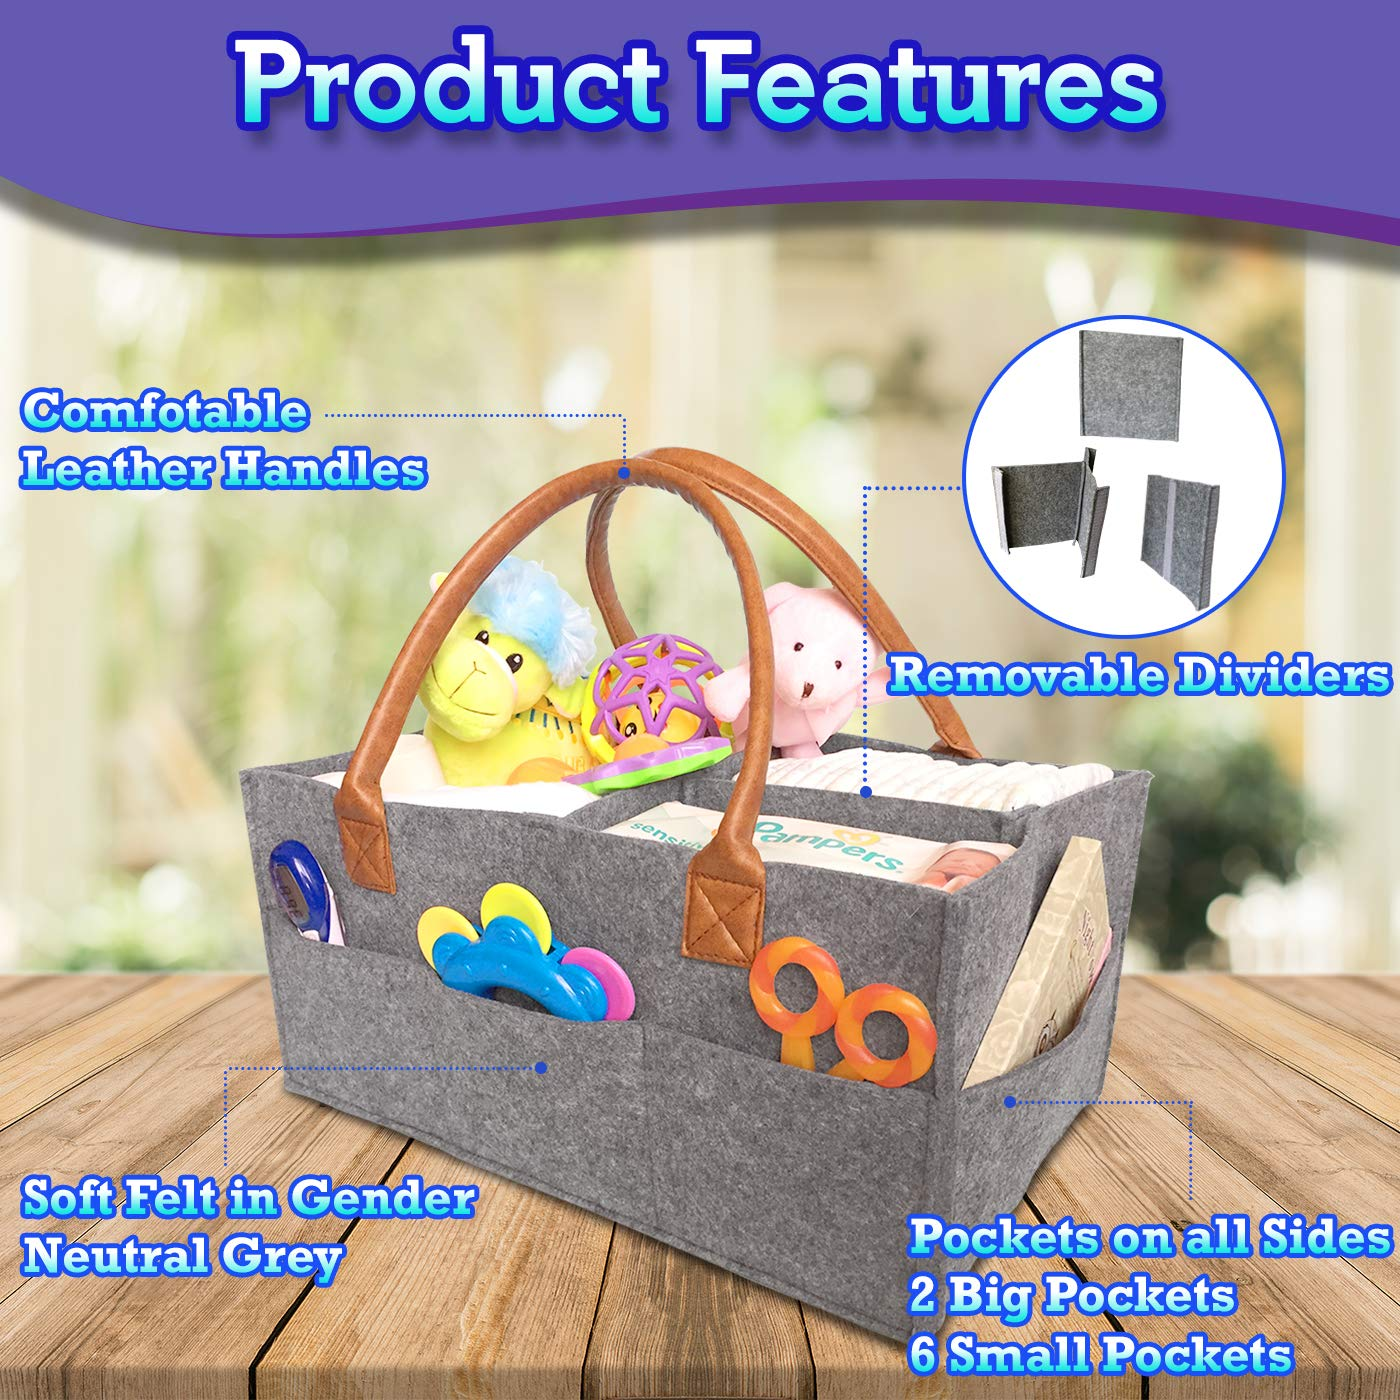 Grey Baby Diaper Caddy Organizer Baby Shower Gift Basket for Boys Girls Diaper Travel Tote Bag Nursery Storage Bin for Changing Table Large Portable Car Travel Caddy 15 x 10.5 x 7 Inch